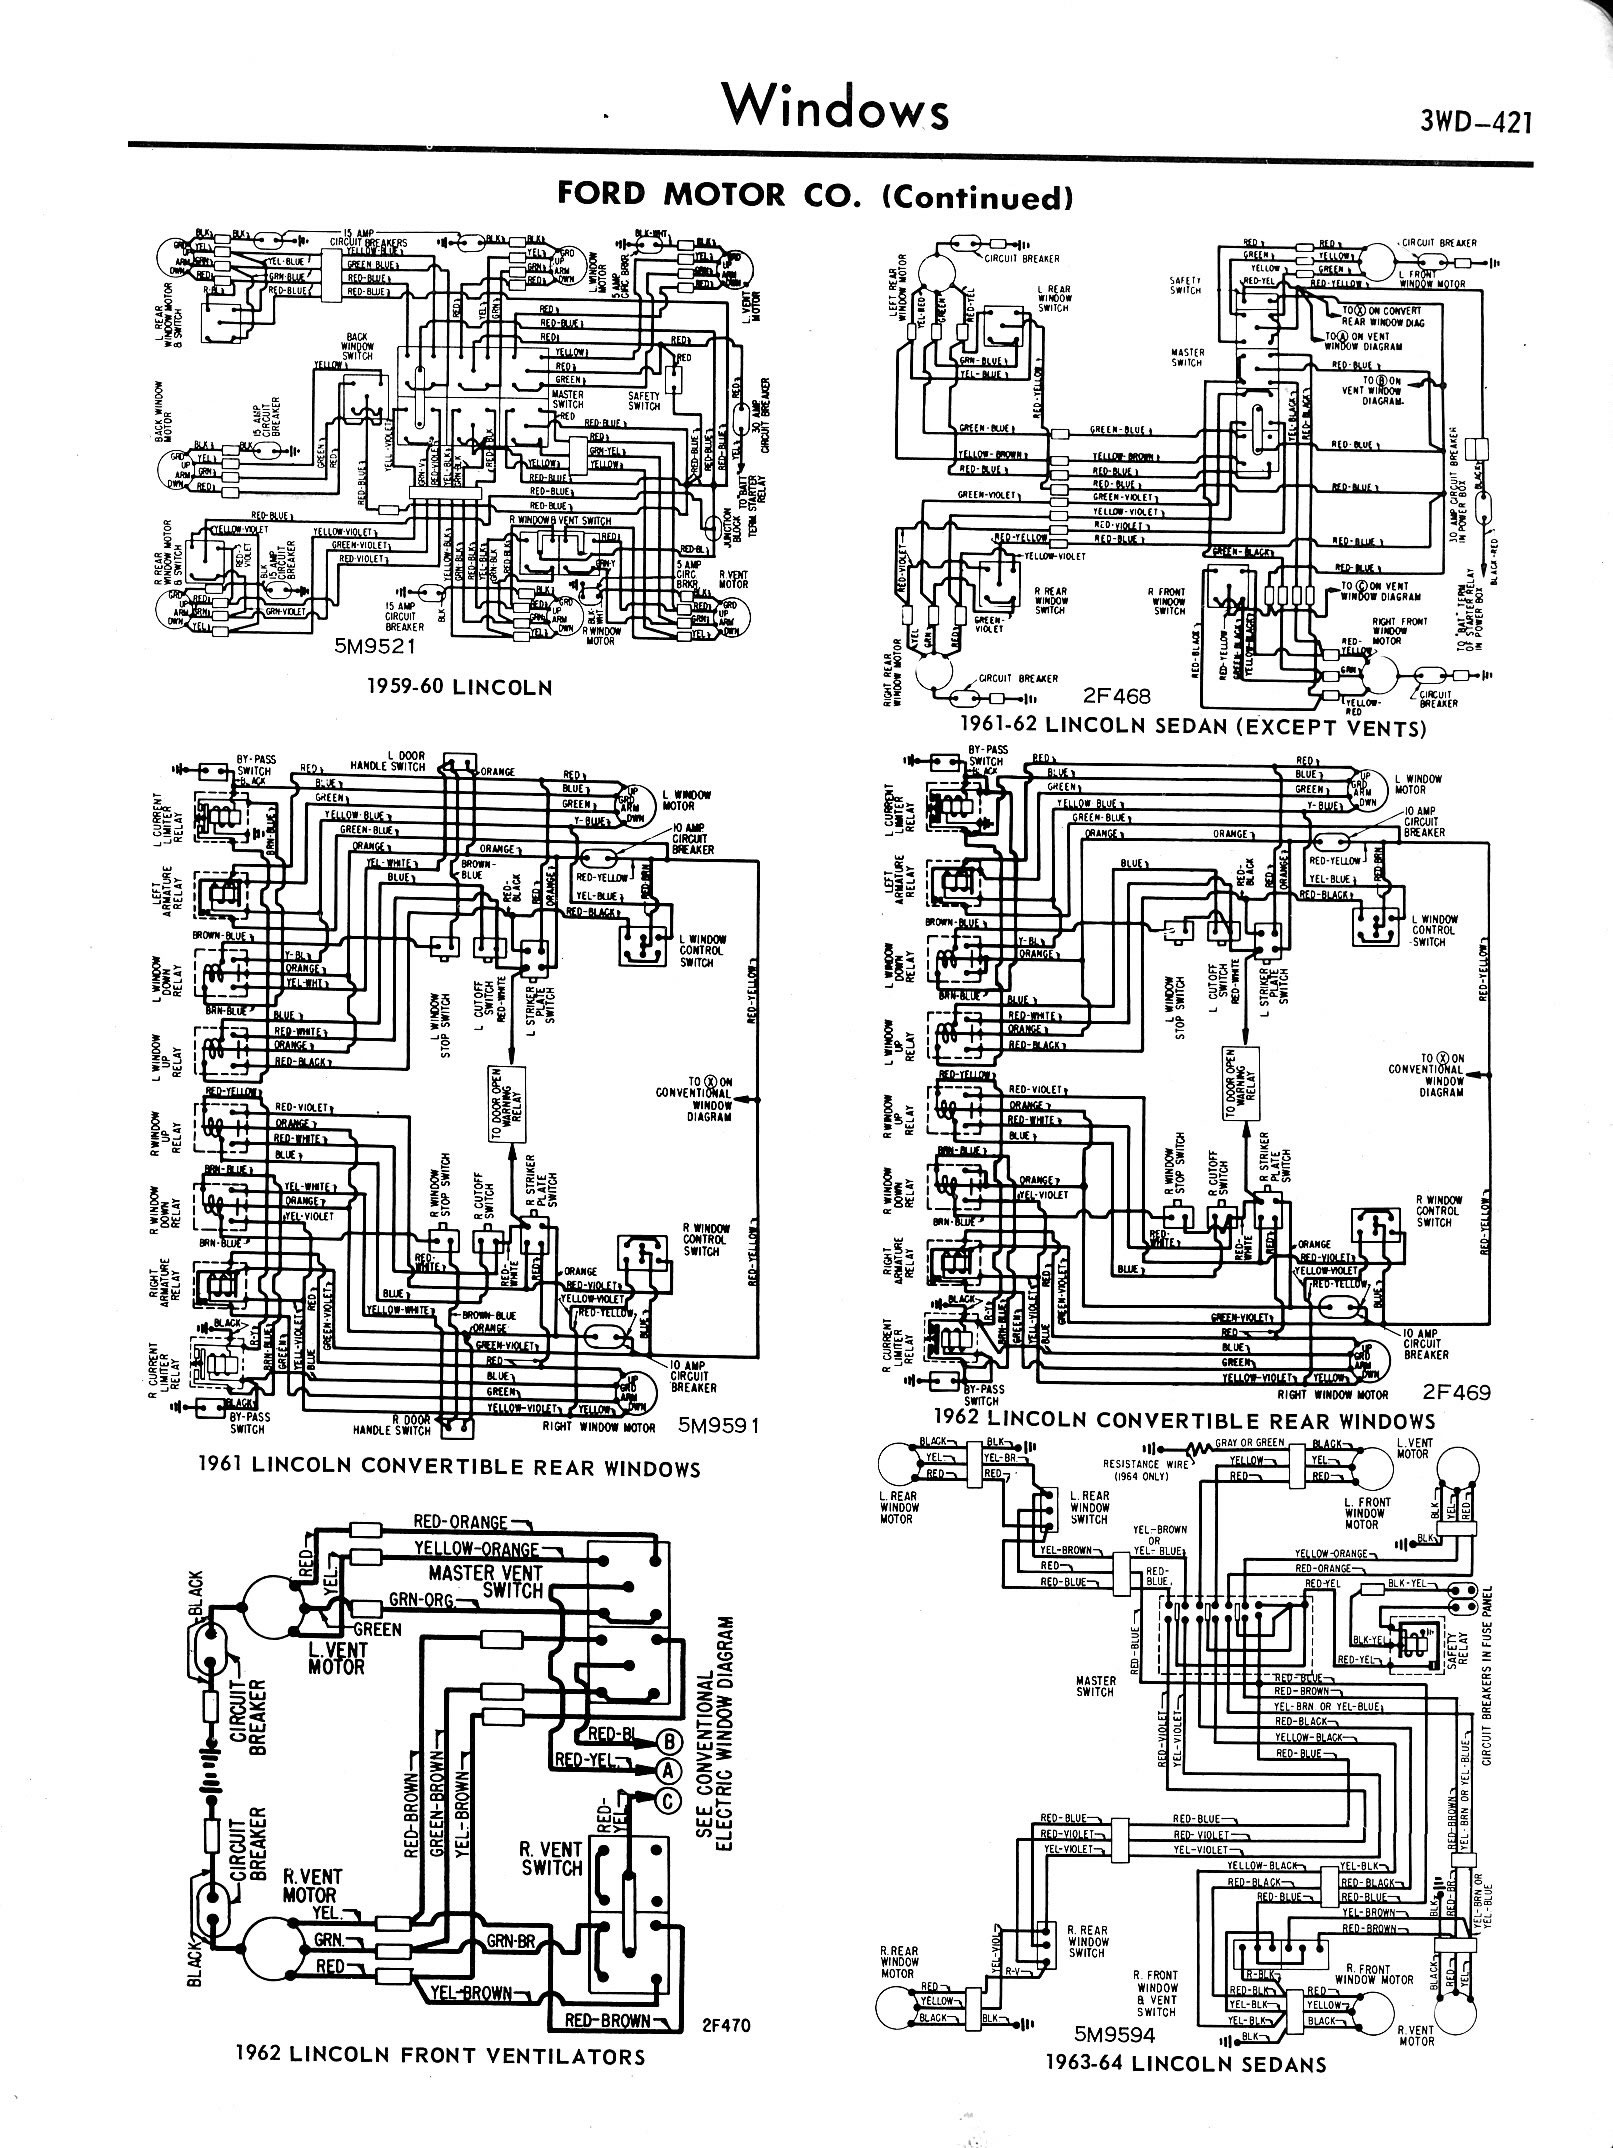 1957-1965 Accessory Wiring Diagrams / 3WD-421.jpg